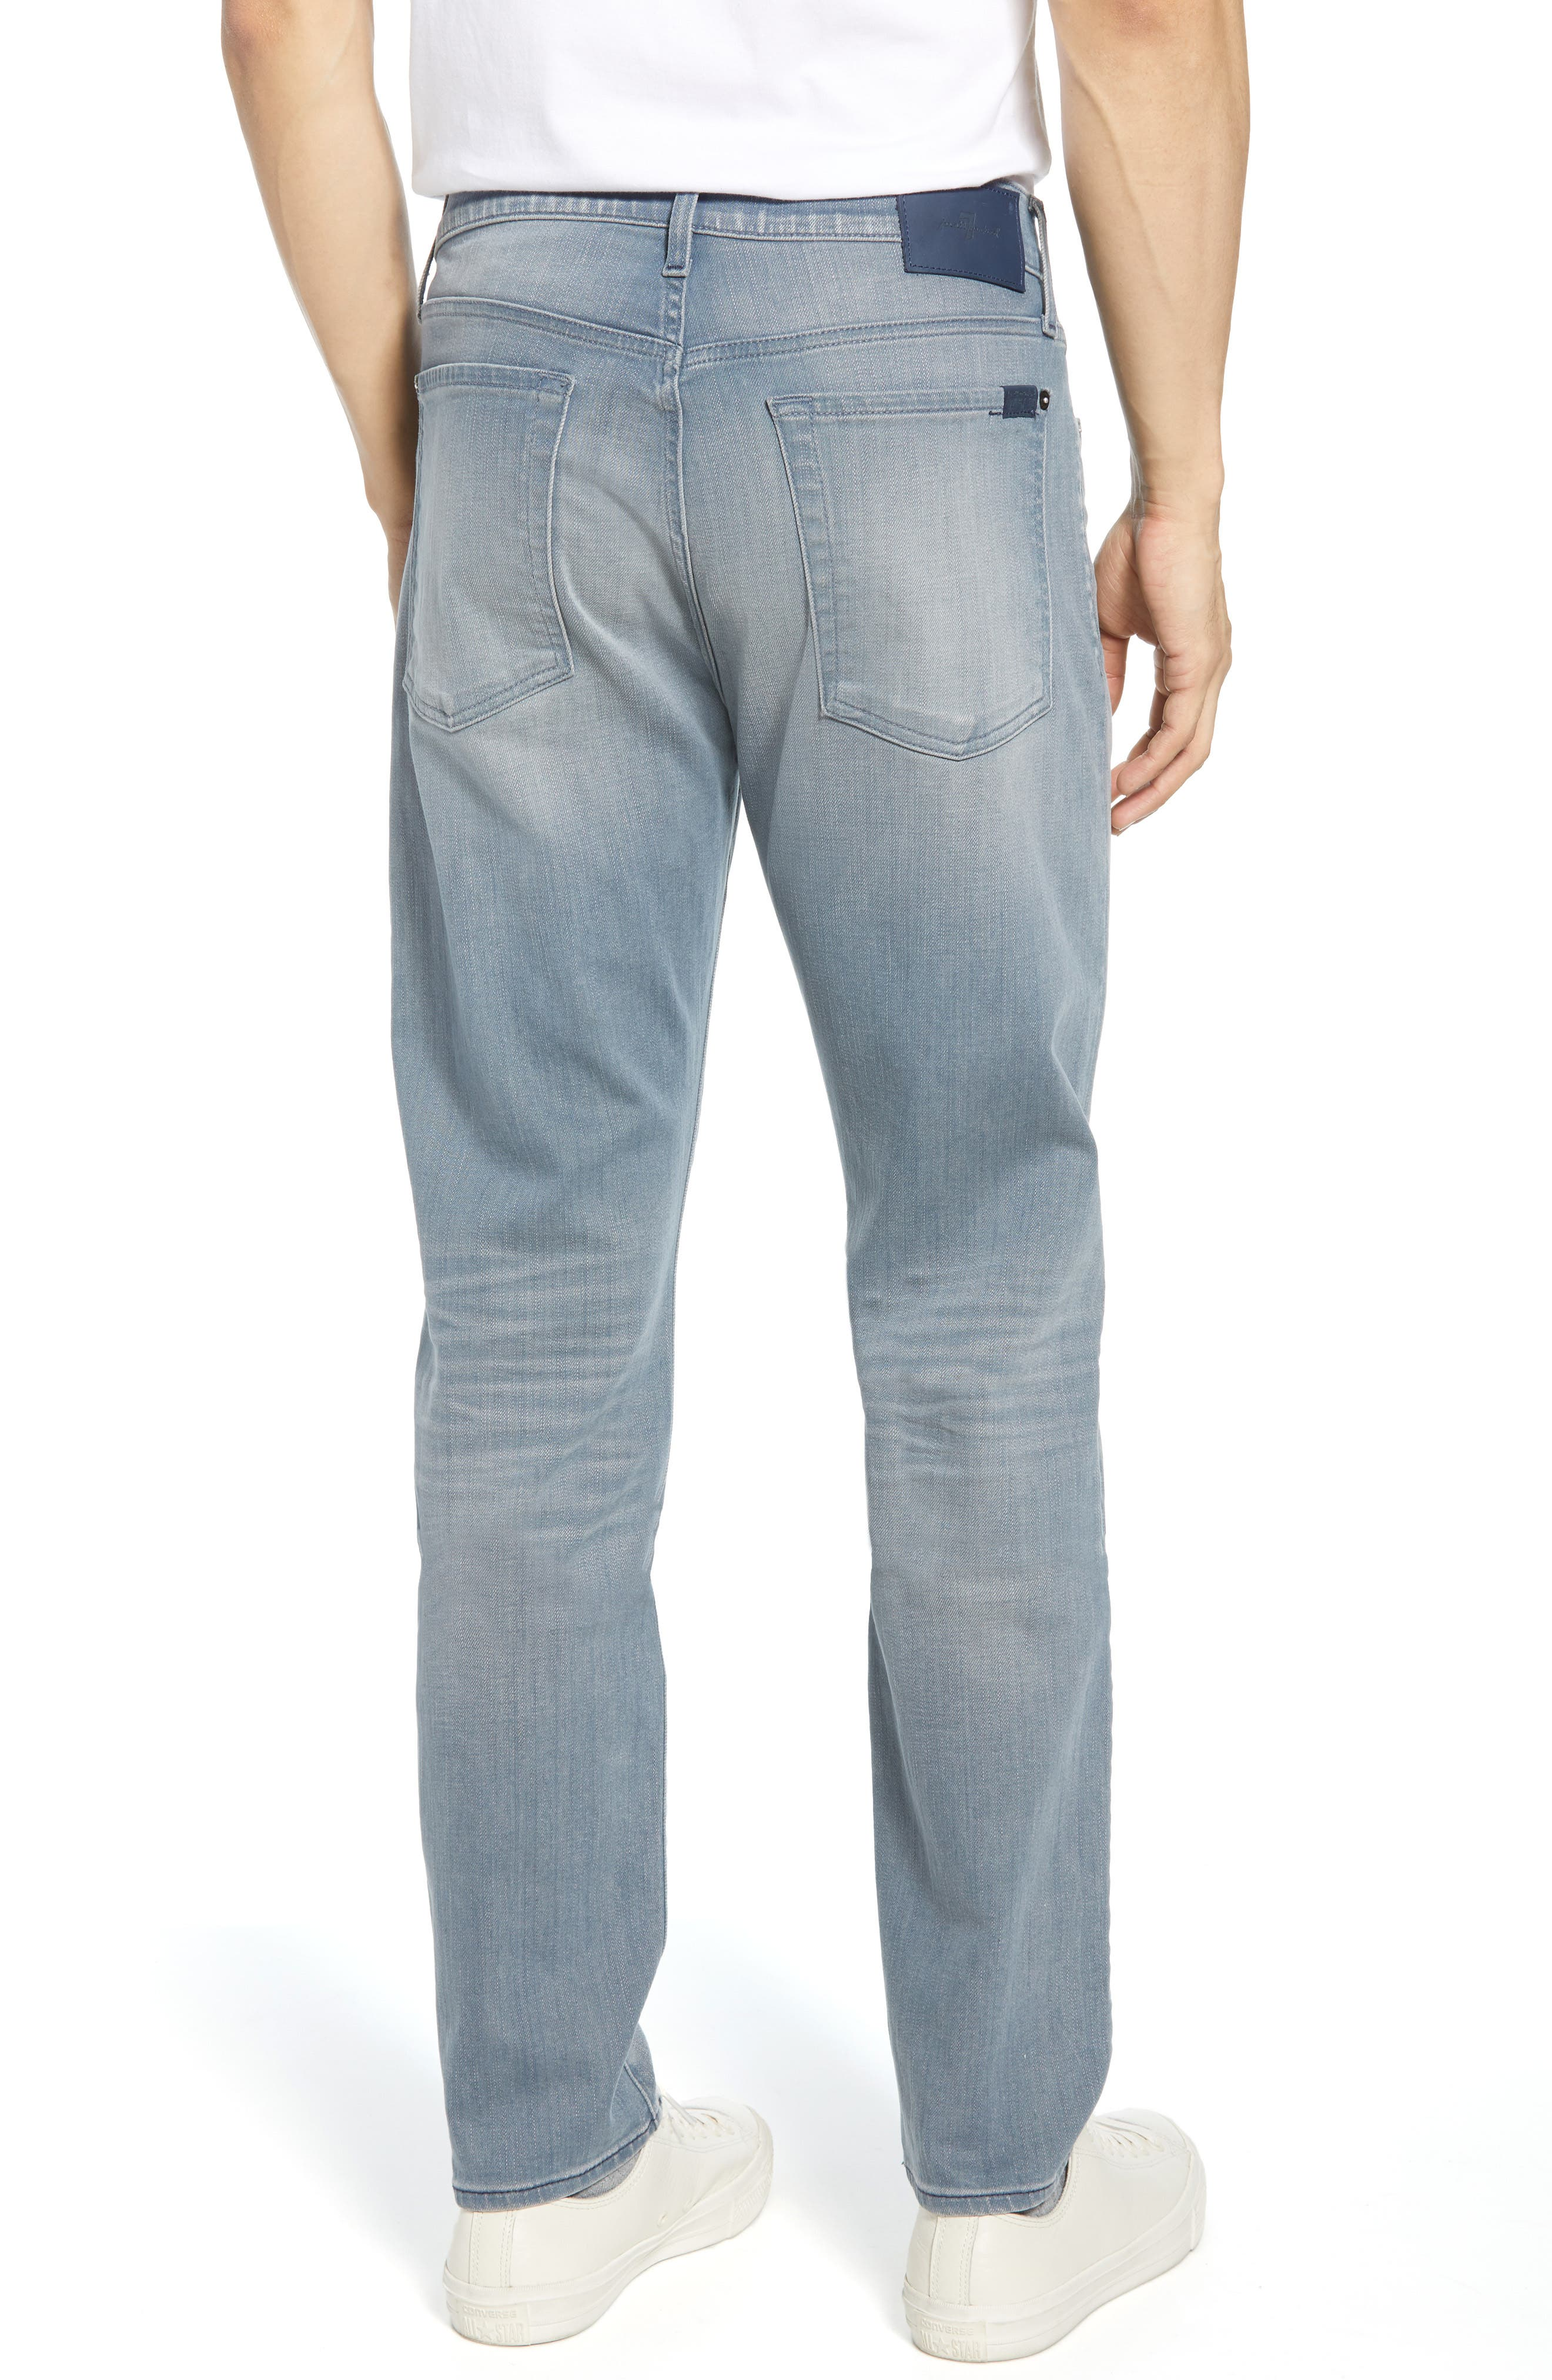 7 FOR ALL MANKIND<SUP>®</SUP>, Ryley Skinny Fit Jeans, Alternate thumbnail 2, color, AEGEAN